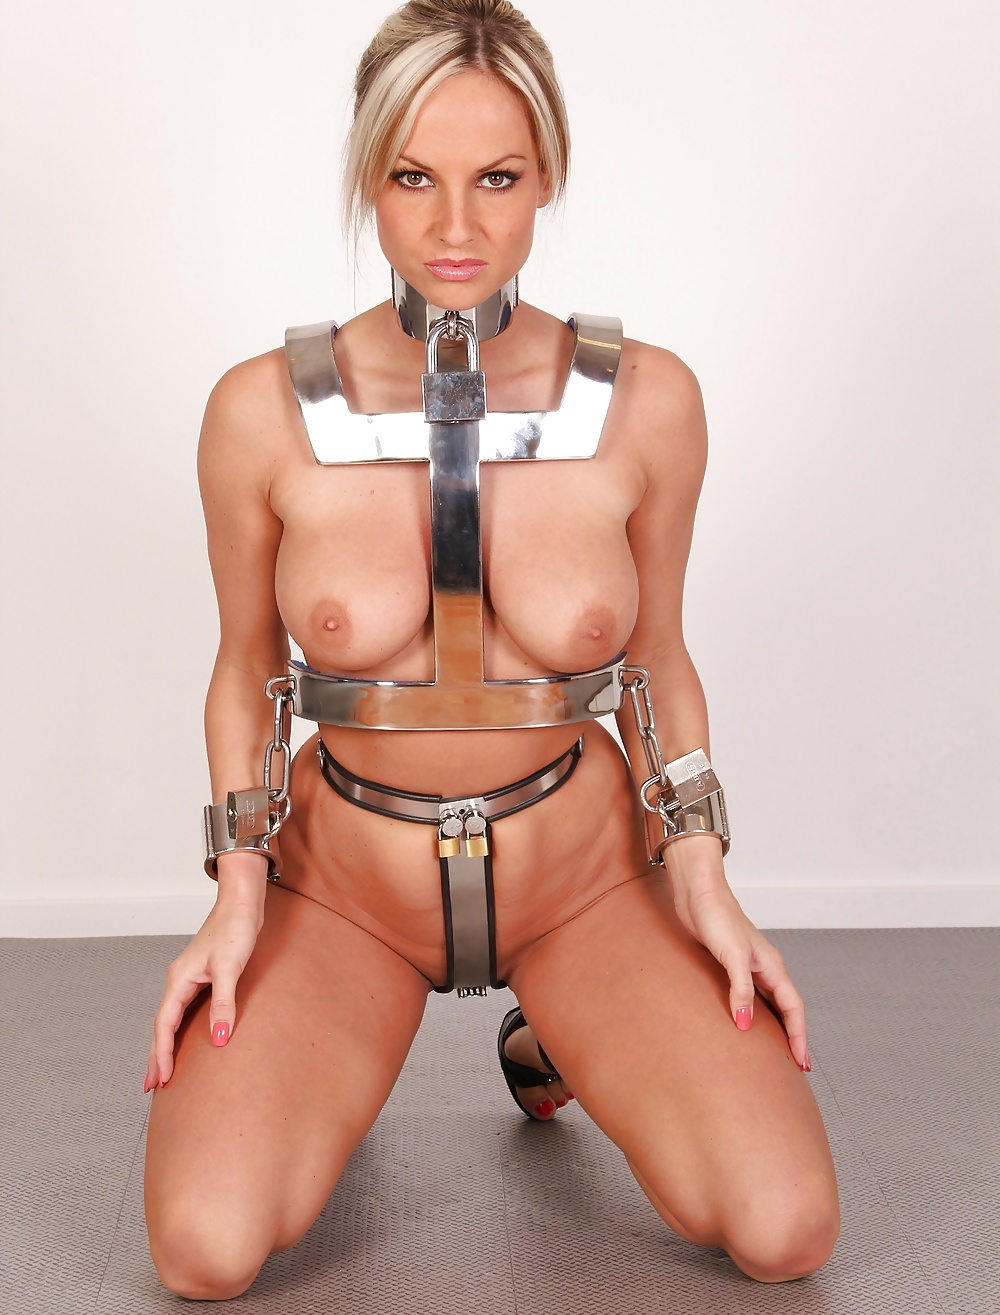 Hot blonde in leather harness training day